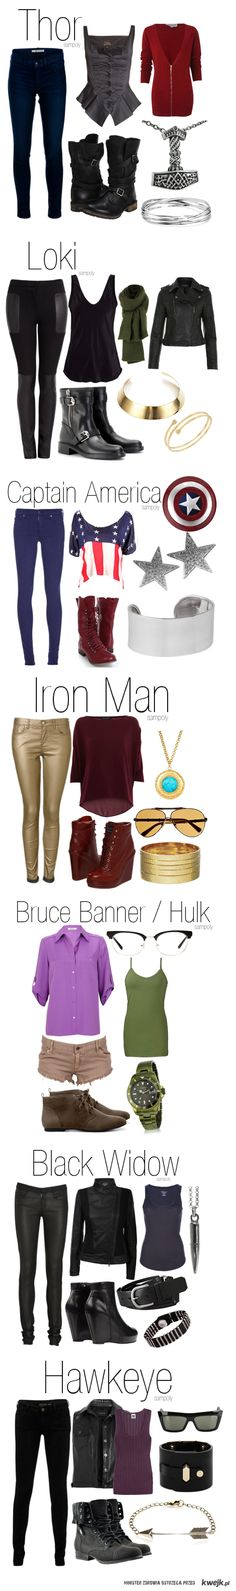 "Avengers-inspired outfits. Thor and Loki are my favorites. :) Beautiful woman superhero. I'd be happy to encounter a physical <a href=""https://hembra.club/"">superhero</a>"